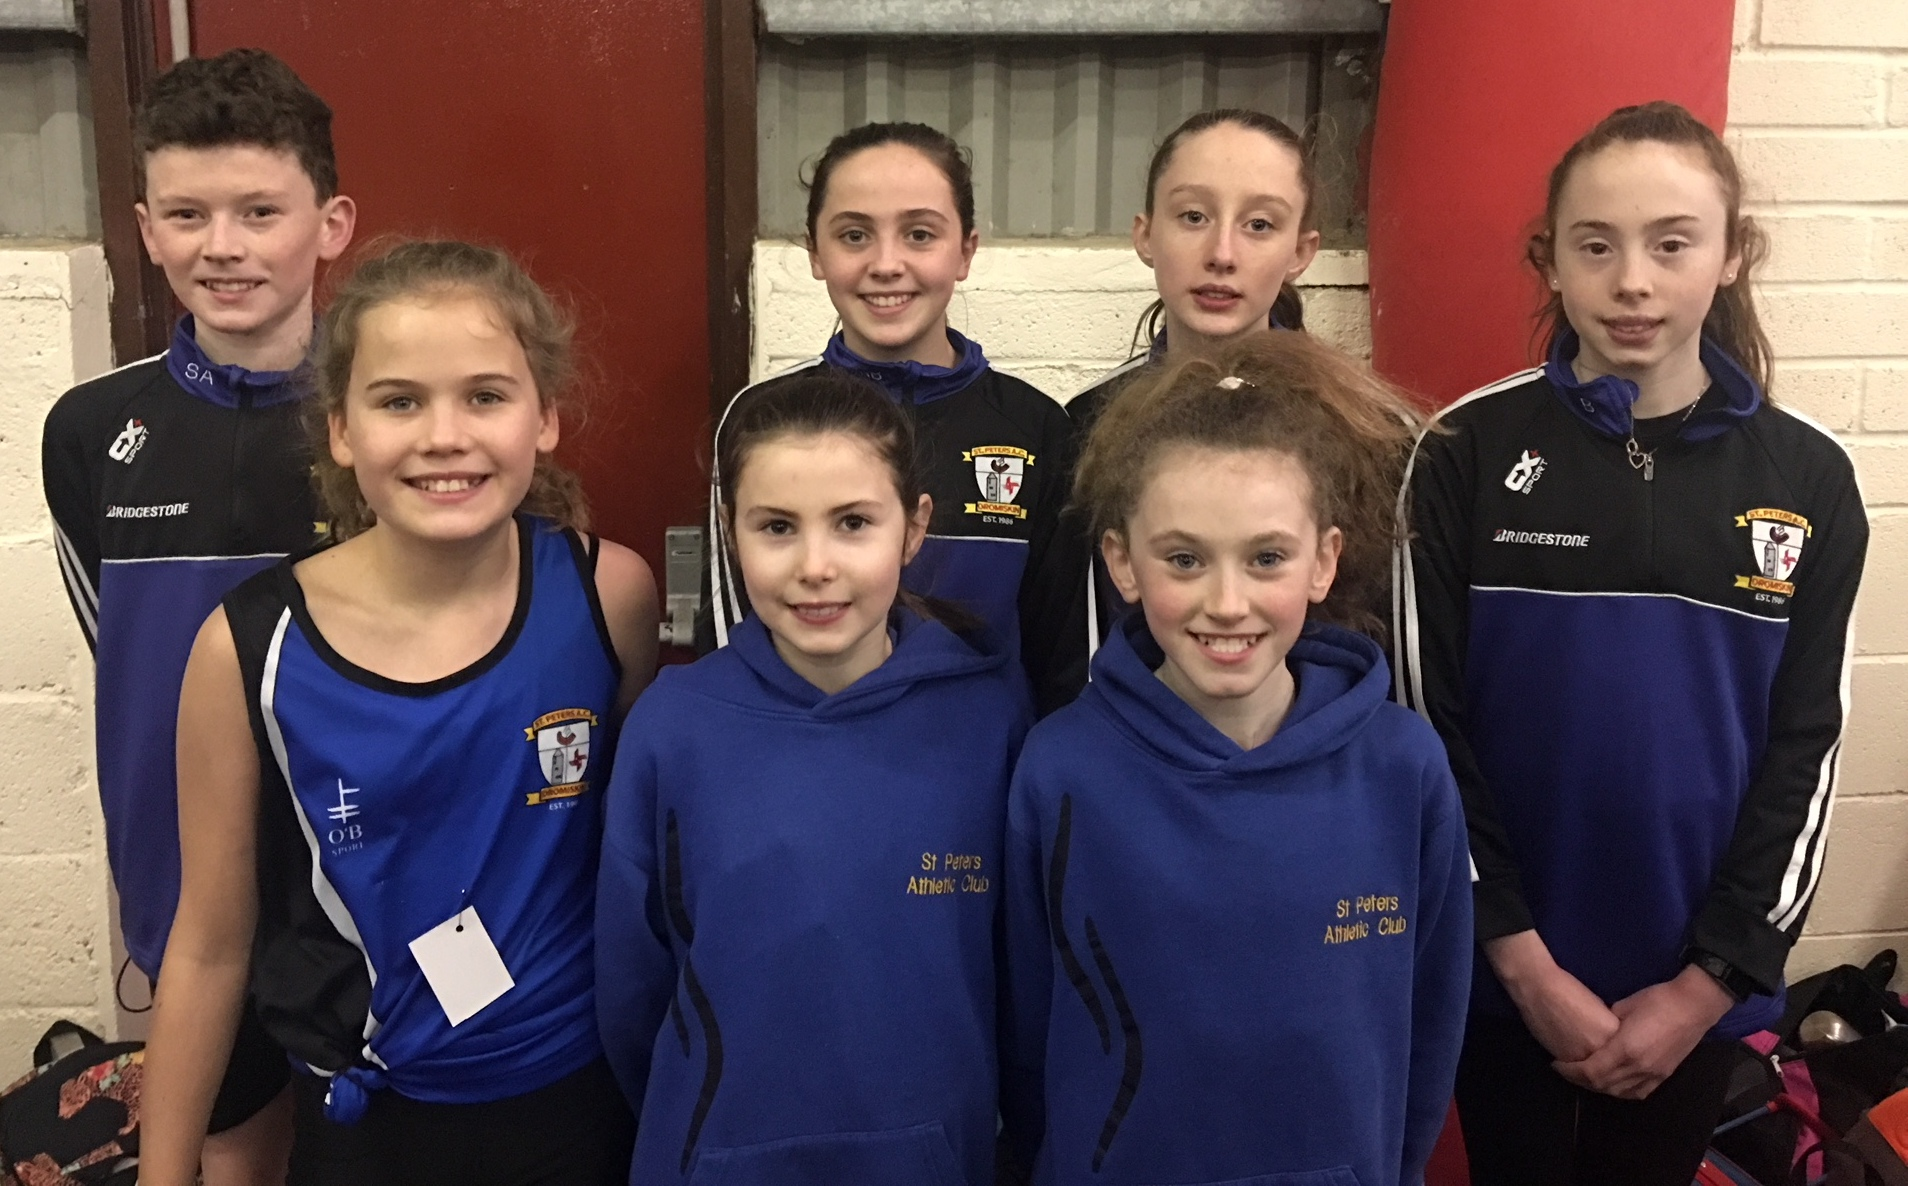 St Peter's AC athletes at Cushinstown AC Indoor Meet (Cushinstown, January 2018)